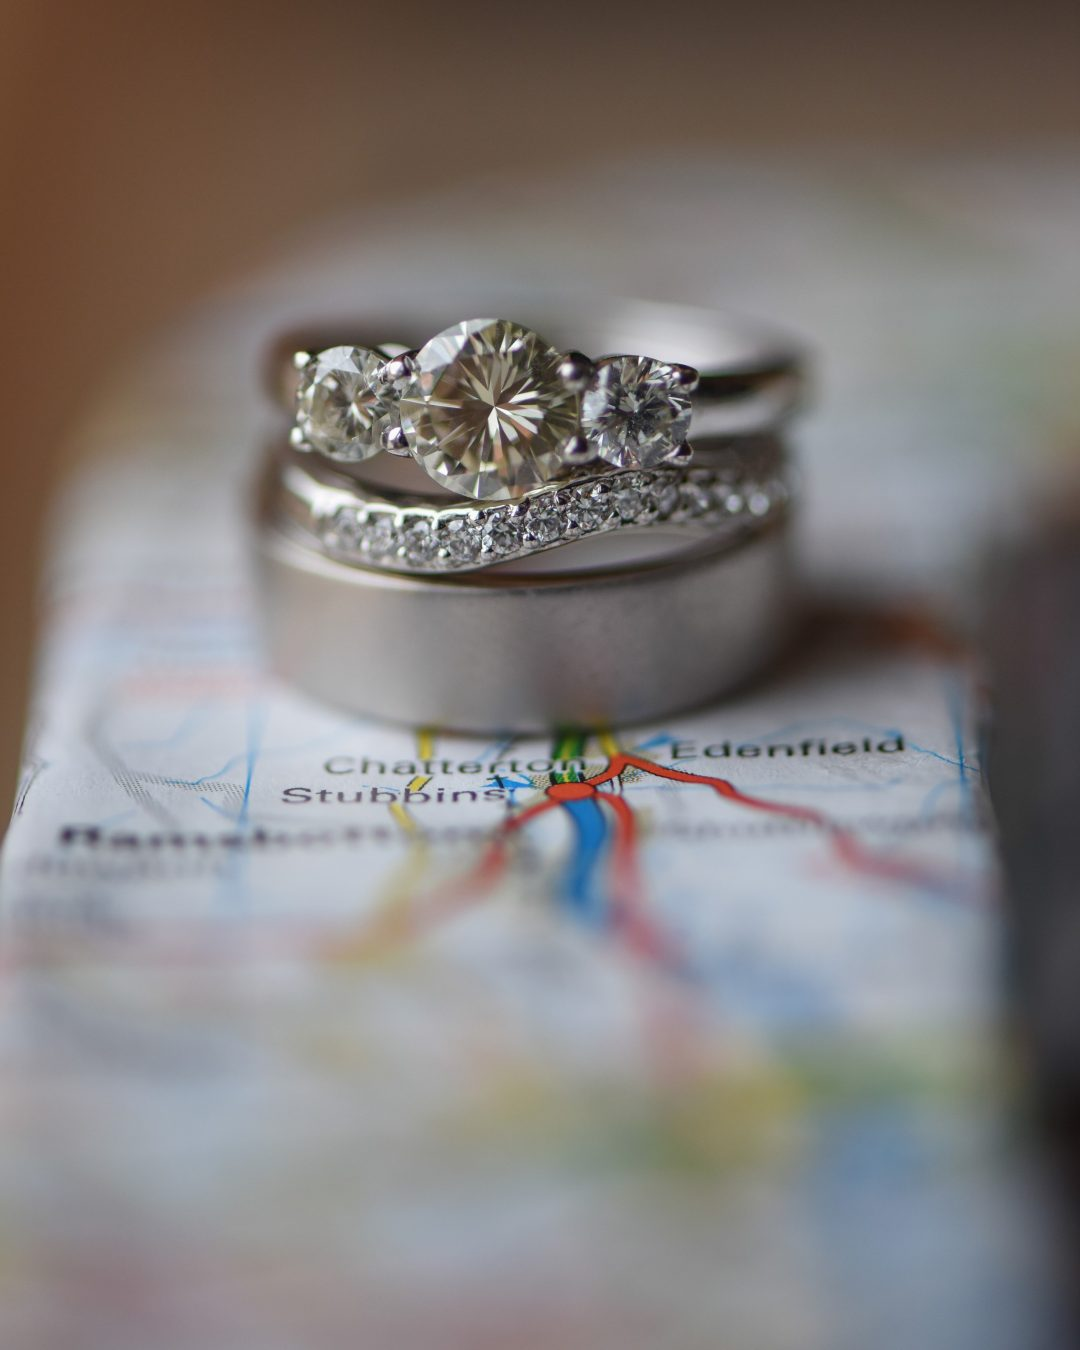 Wedding photography at Preston Court in Canterbury - the wedding rings